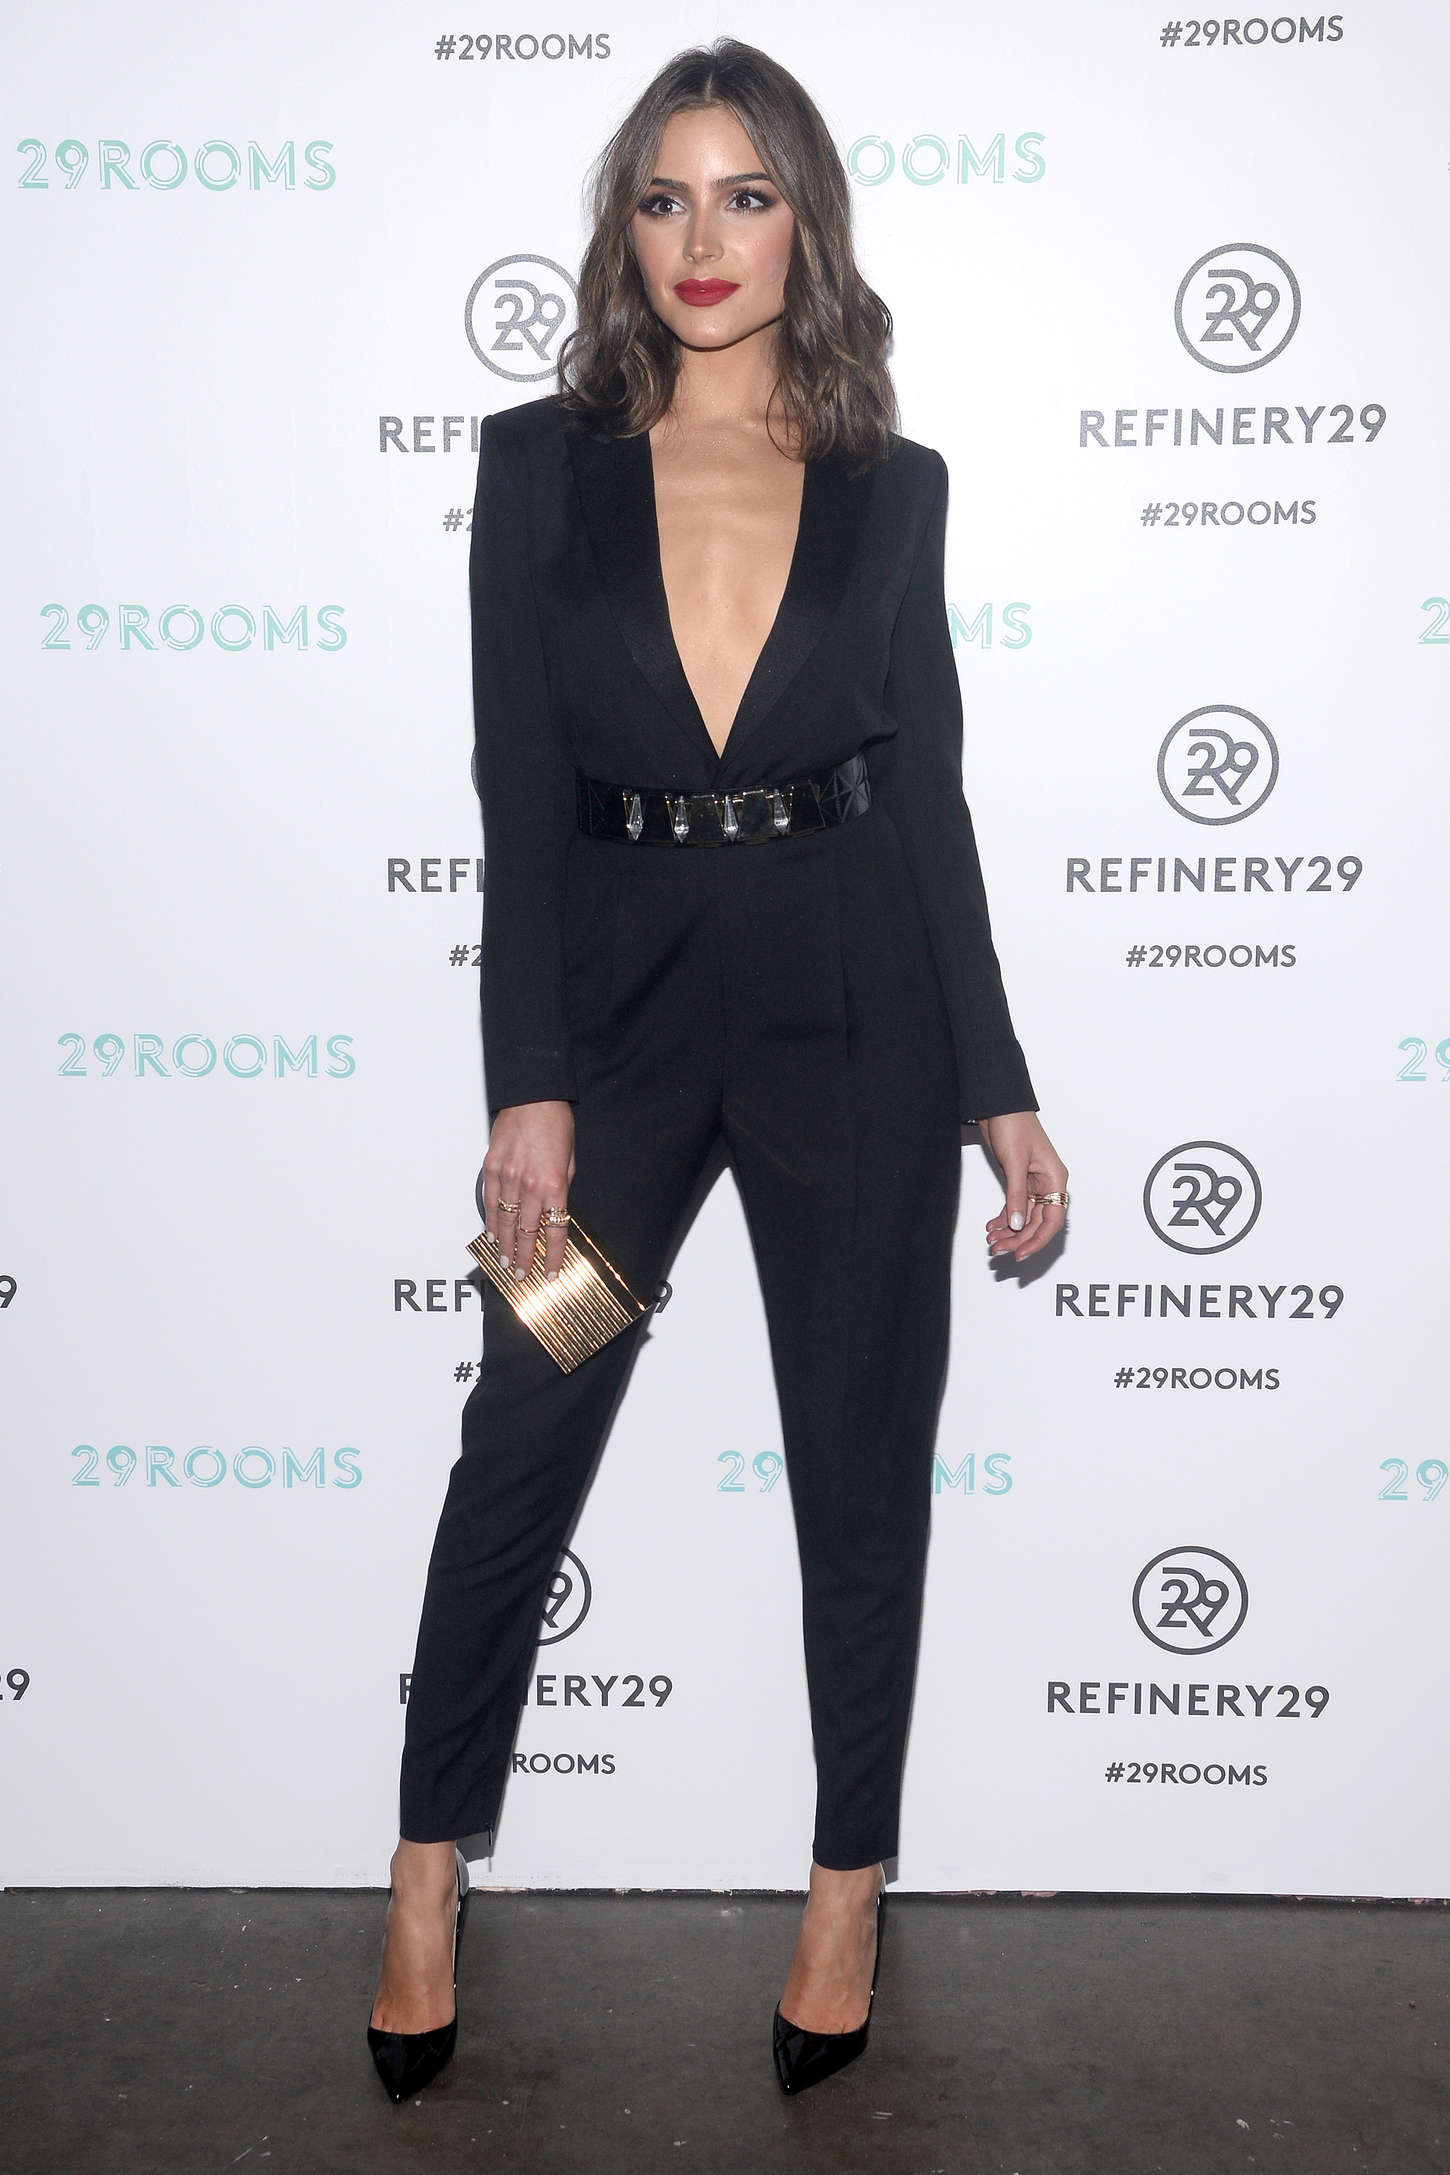 Olivia Culpo 2015 : Olivia Culpo: Refinery29 Presents 29Room -13